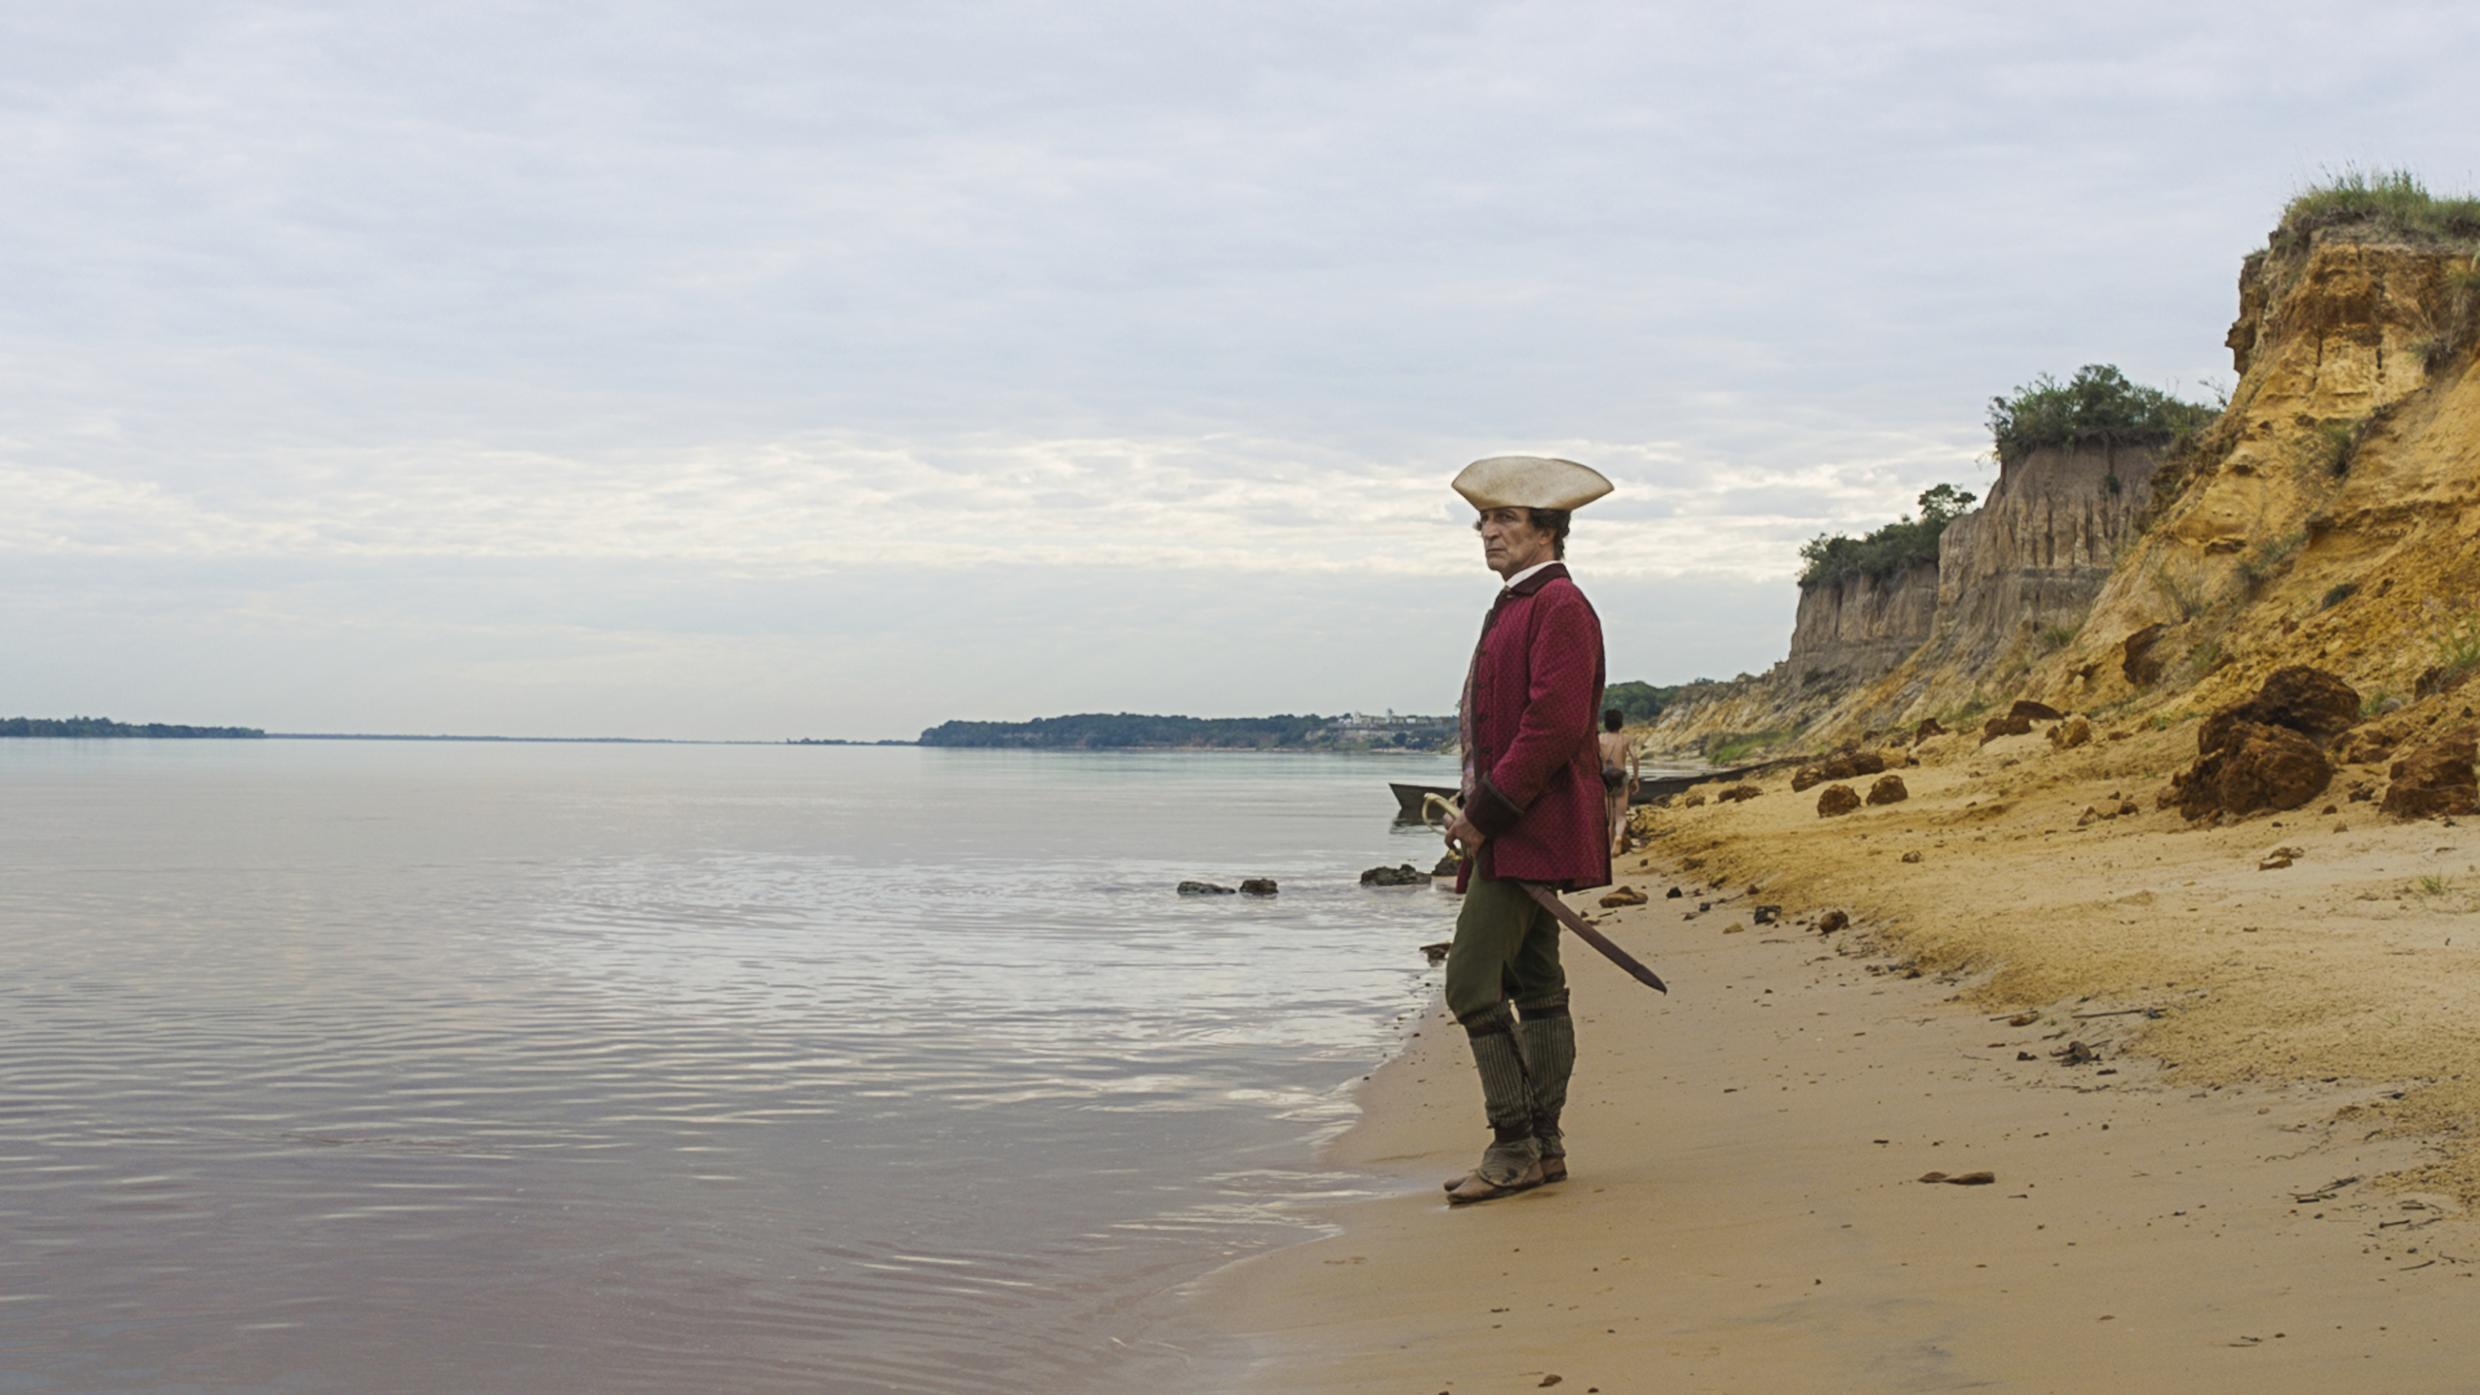 """In Lucrecia Martel's """"Zama"""", Don Diego de Zama waits by the Parana River for a boat to take him back to his family."""